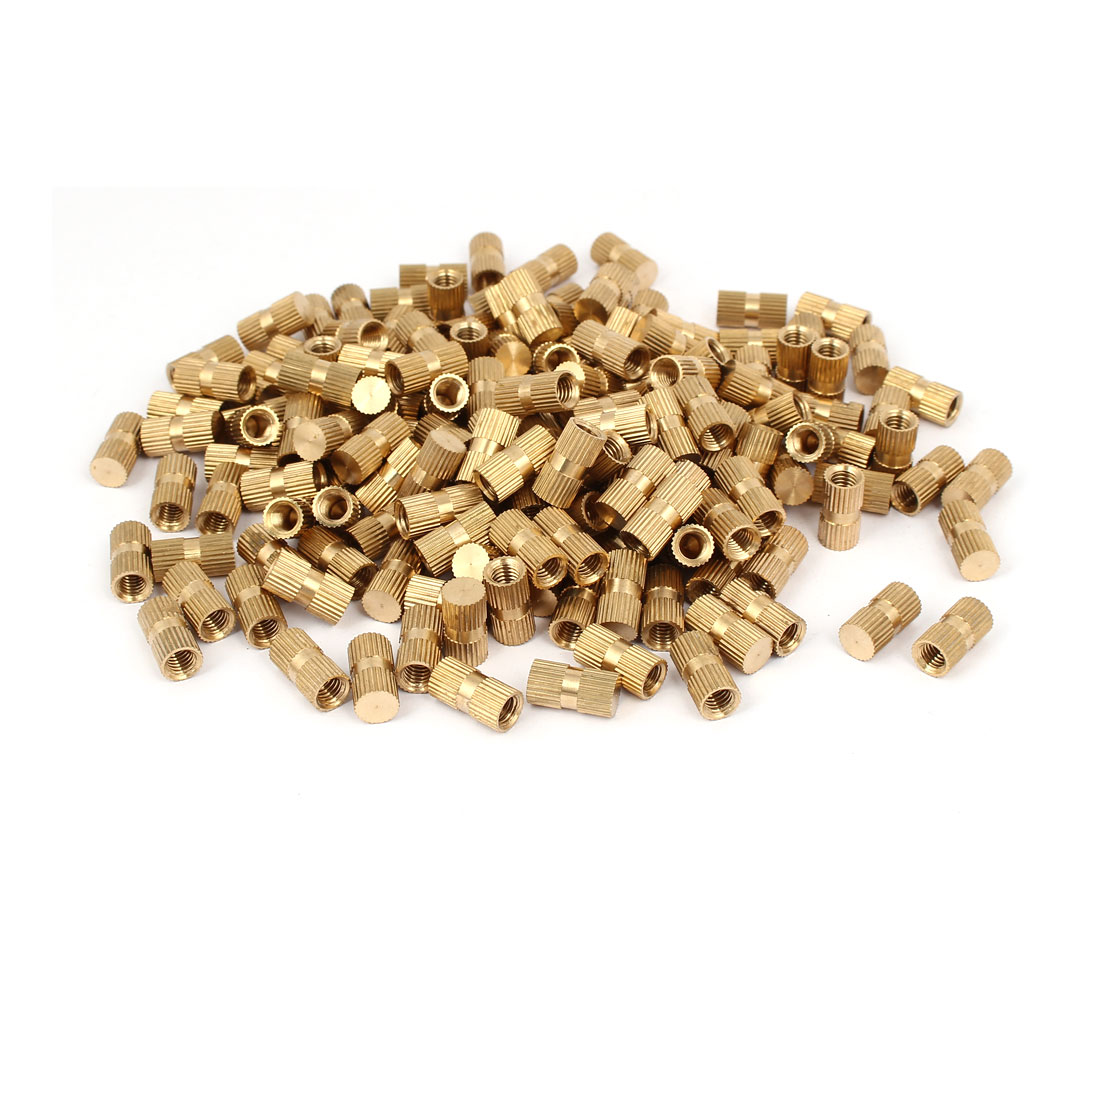 M6 x 16mm 8.3mm OD Brass Injection Molding Threaded Knurled Thumb Nut 200PCS